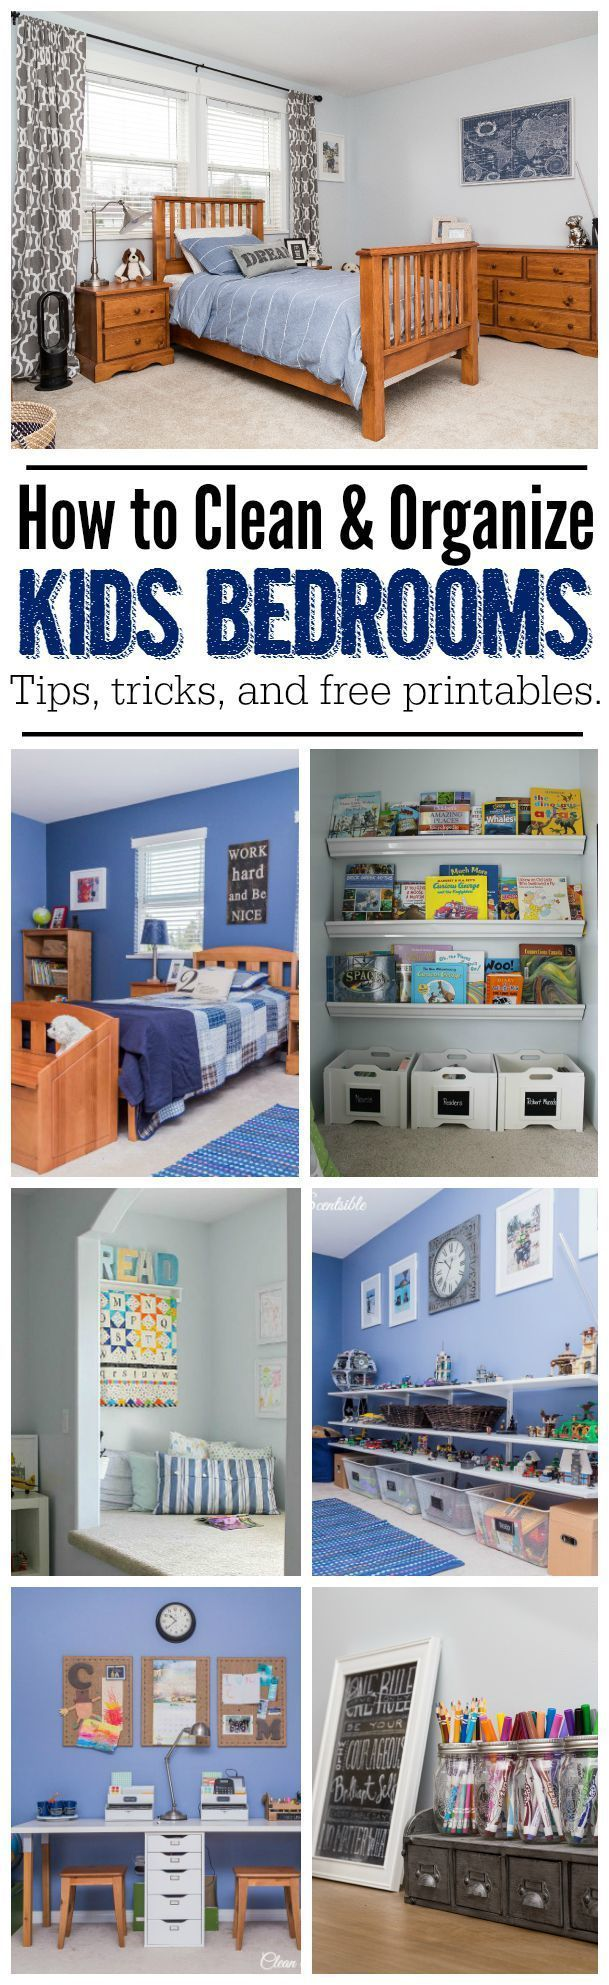 Everything you need to get your kids bedrooms cleaned and organized! Part of the Household Organization Diet.